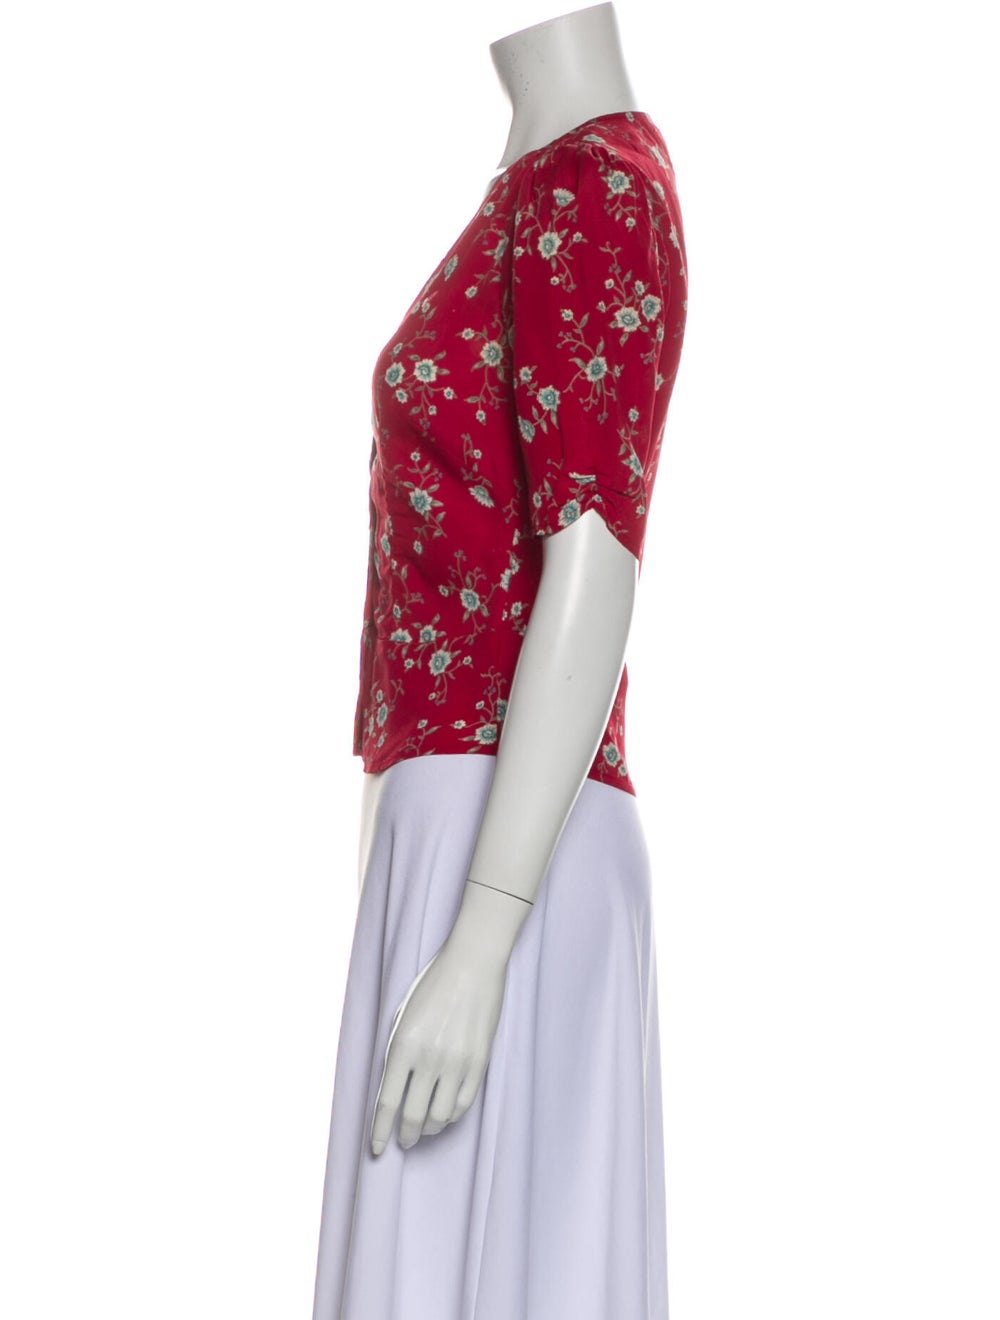 Reformation Floral Print V-Neck Crop Top Red - image 2